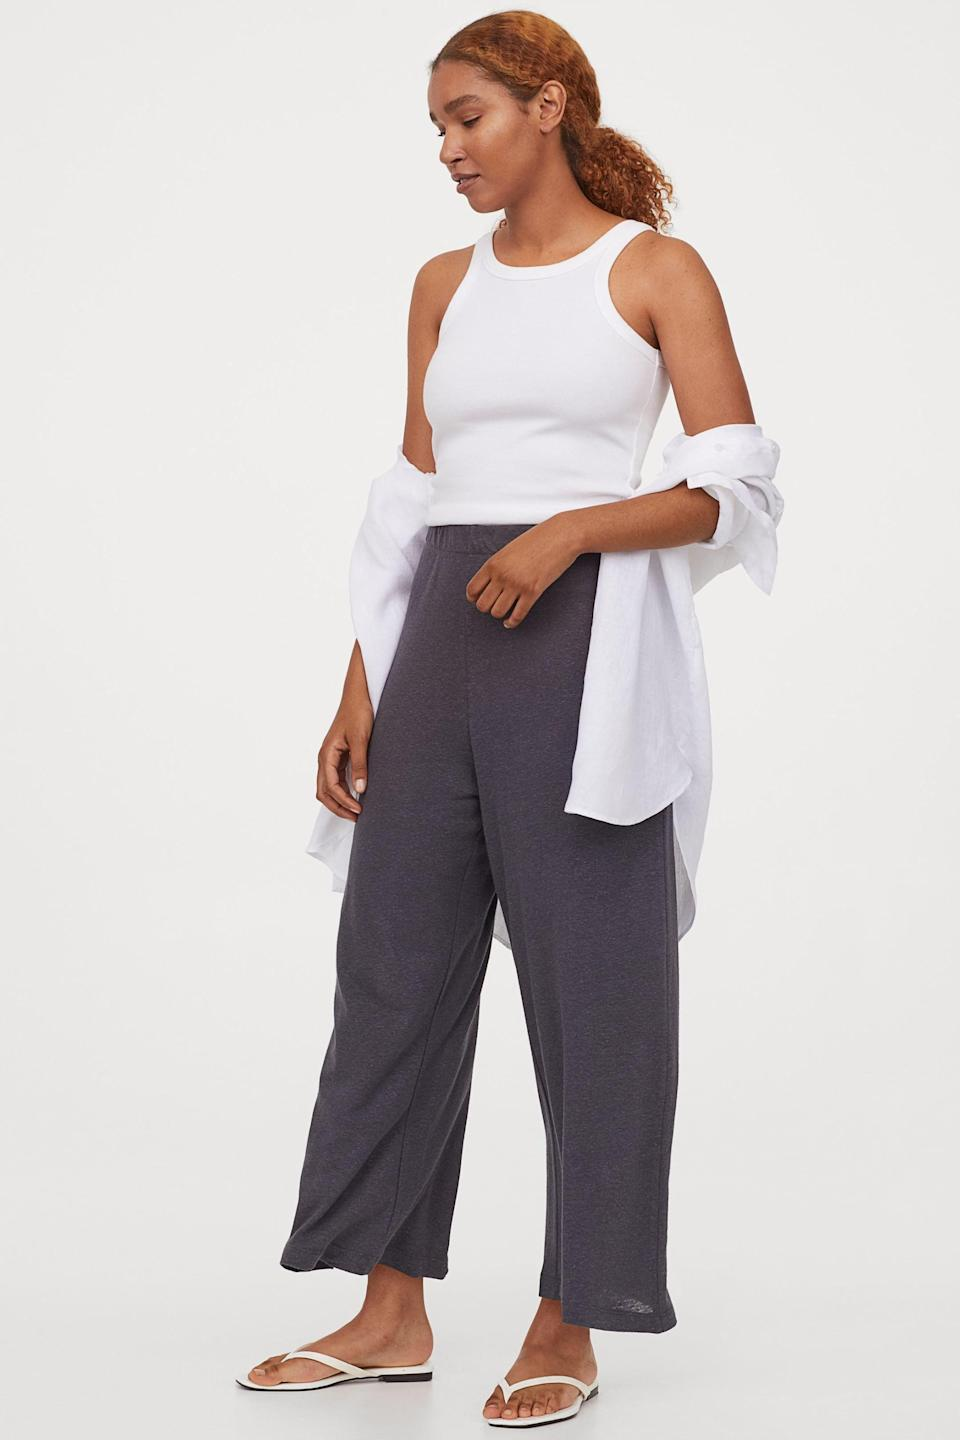 <p>For days you just want to lounge, get these comfy <span>H&M Wide-cut Jersey Pants</span> ($25).</p>